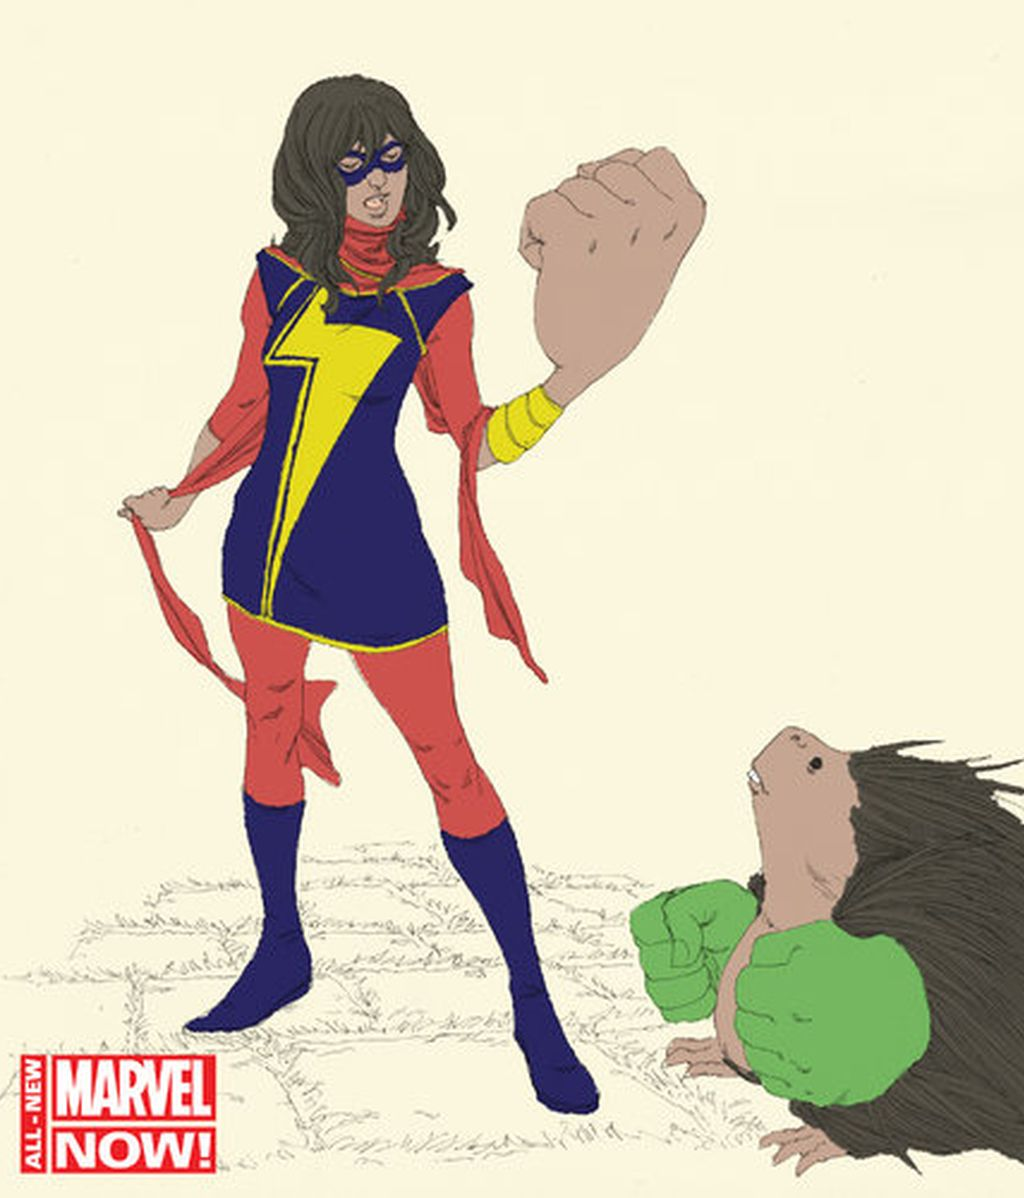 superheroína árabe, Kamala Khan, Marvel, cómic